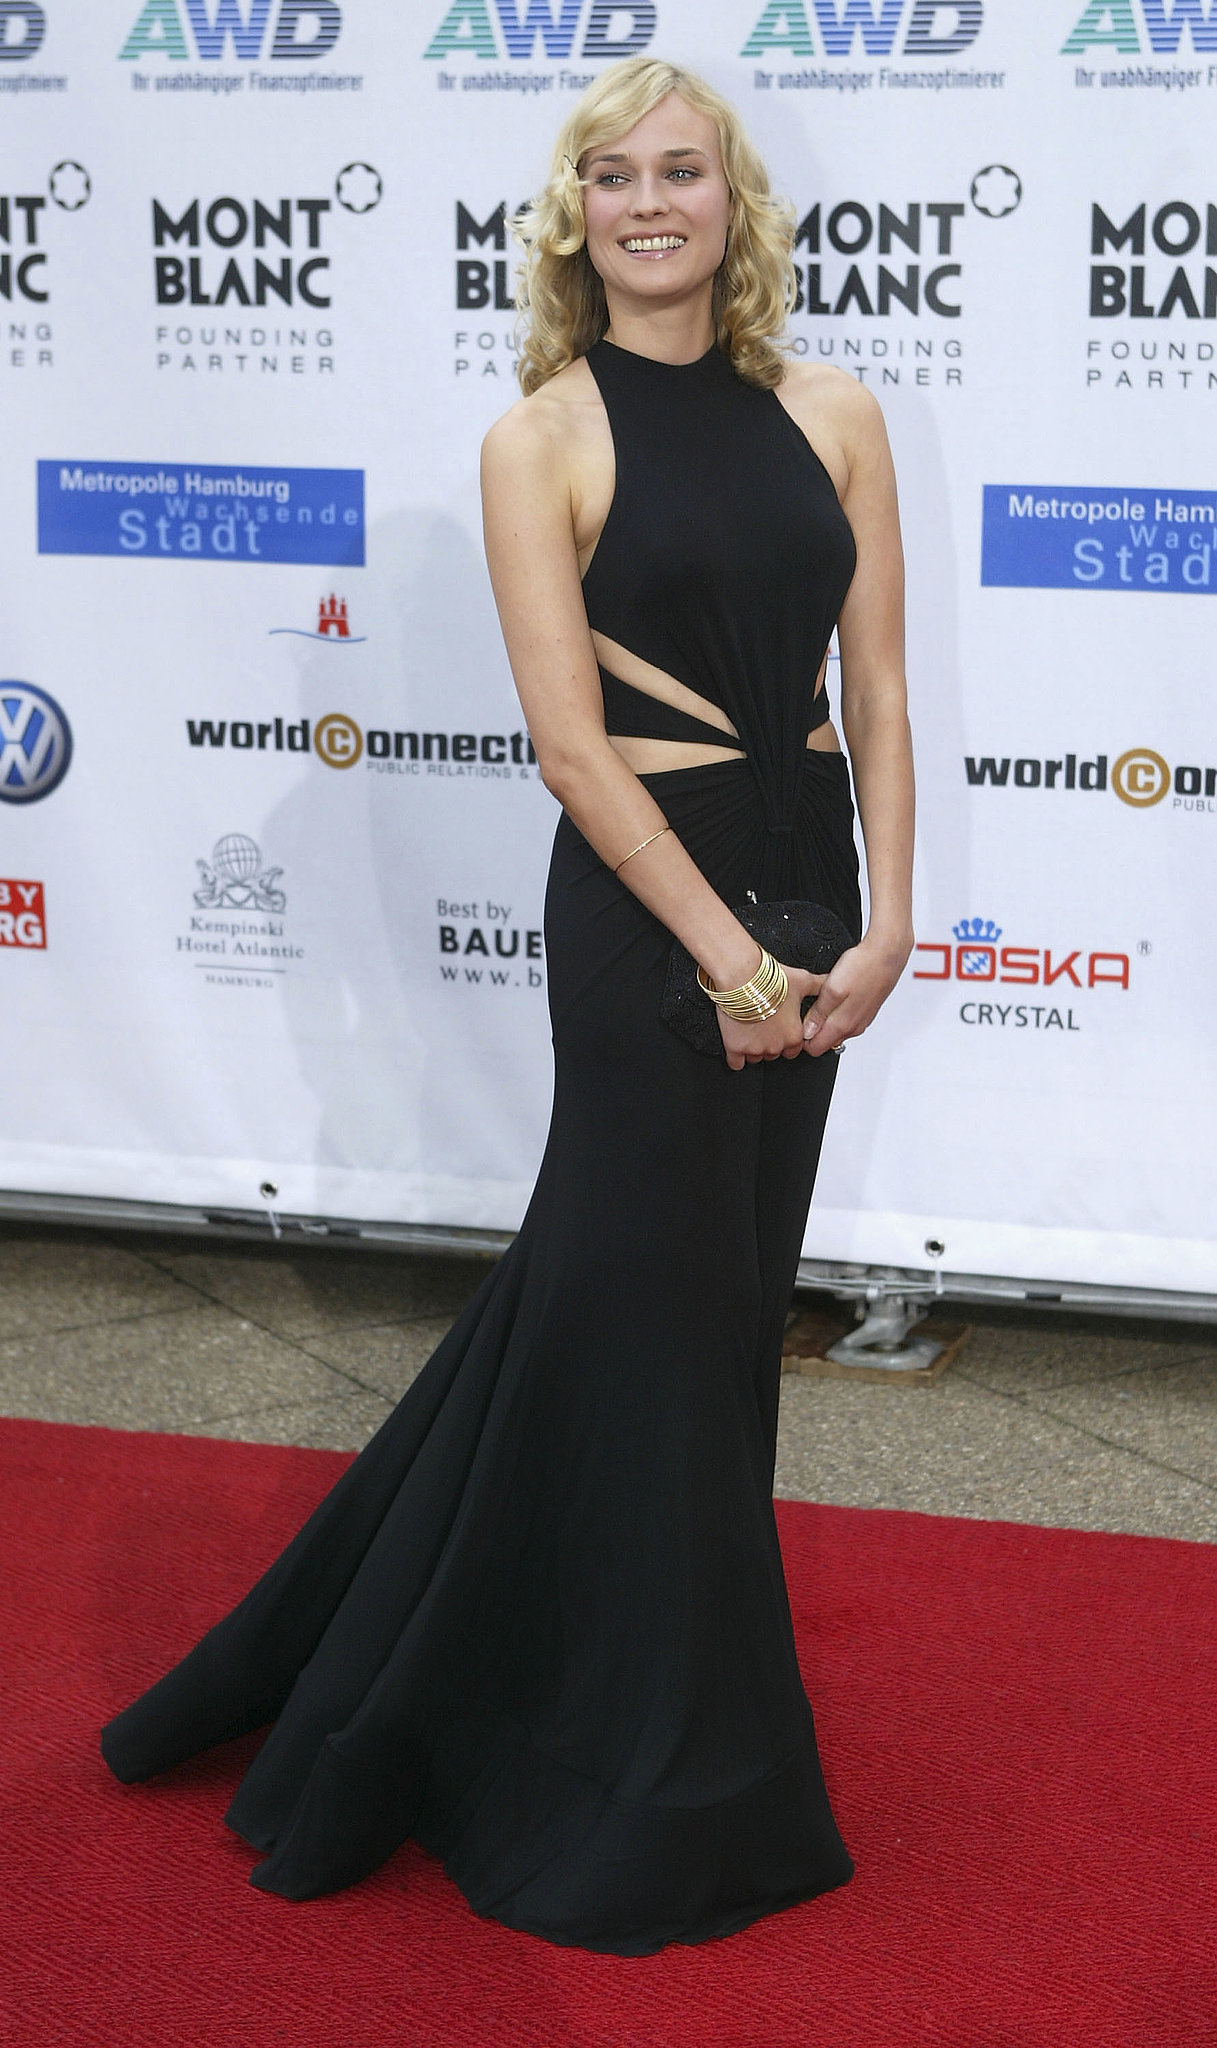 Diane wore a sexy black cutout gown at the 2004 Women's World Awards in Germany.